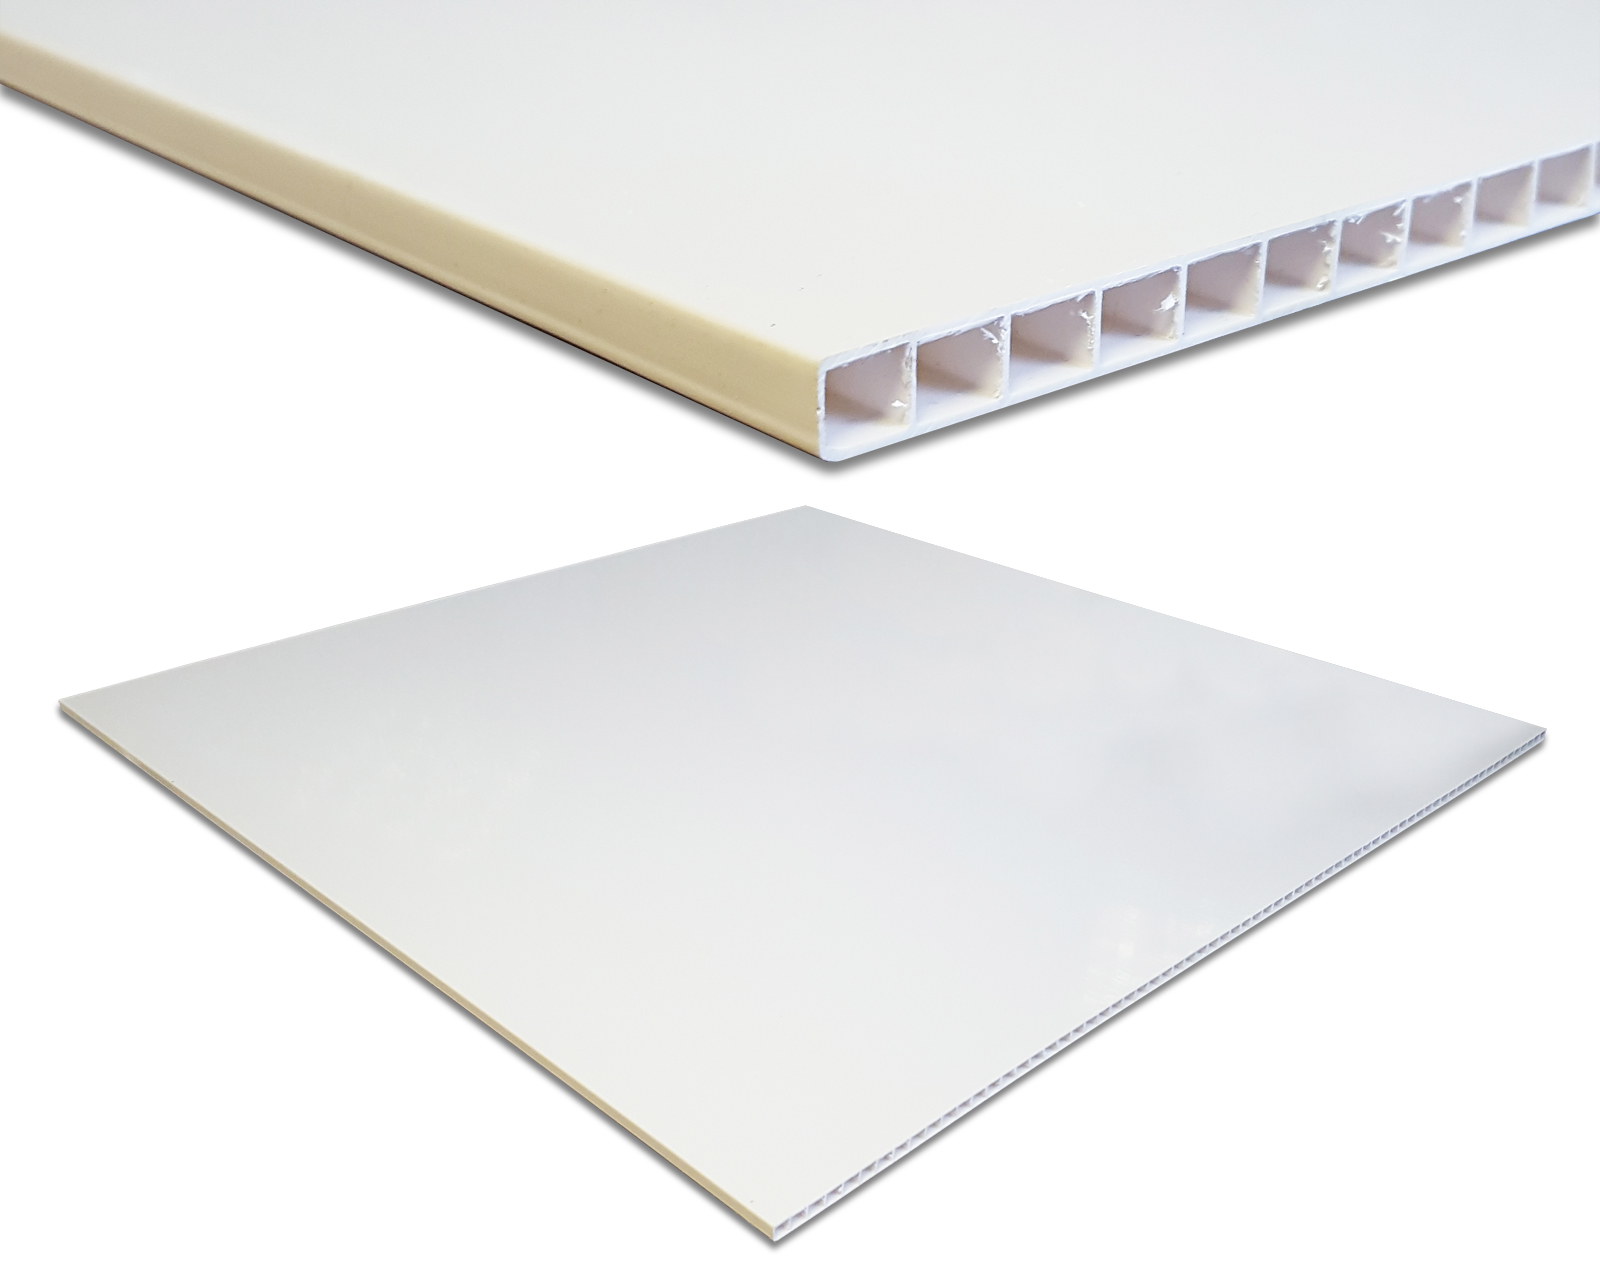 Pvc Ceiling Tiles : Titan easycare pvc ceiling tiles pack of panels